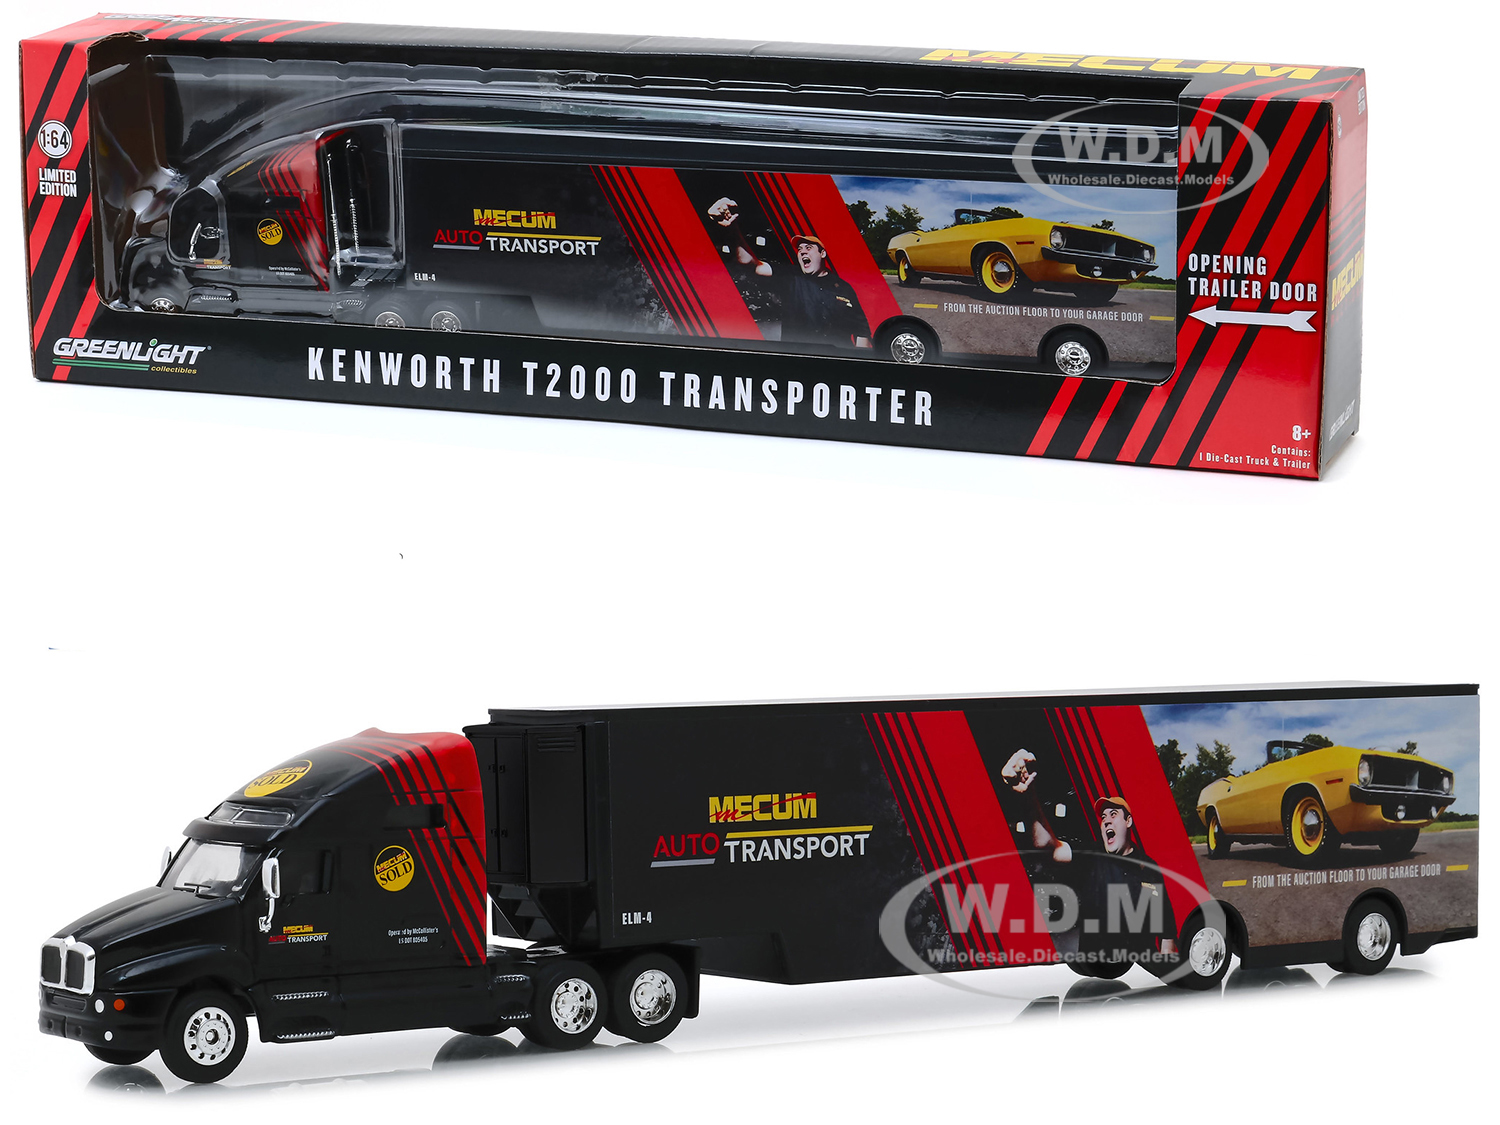 Kenworth T2000 Mecum Auto Transport Transporter From the Auction Floor to Your Garage Door Hobby Exclusive 1/64 Diecast Model by Greenlight - from $22.99